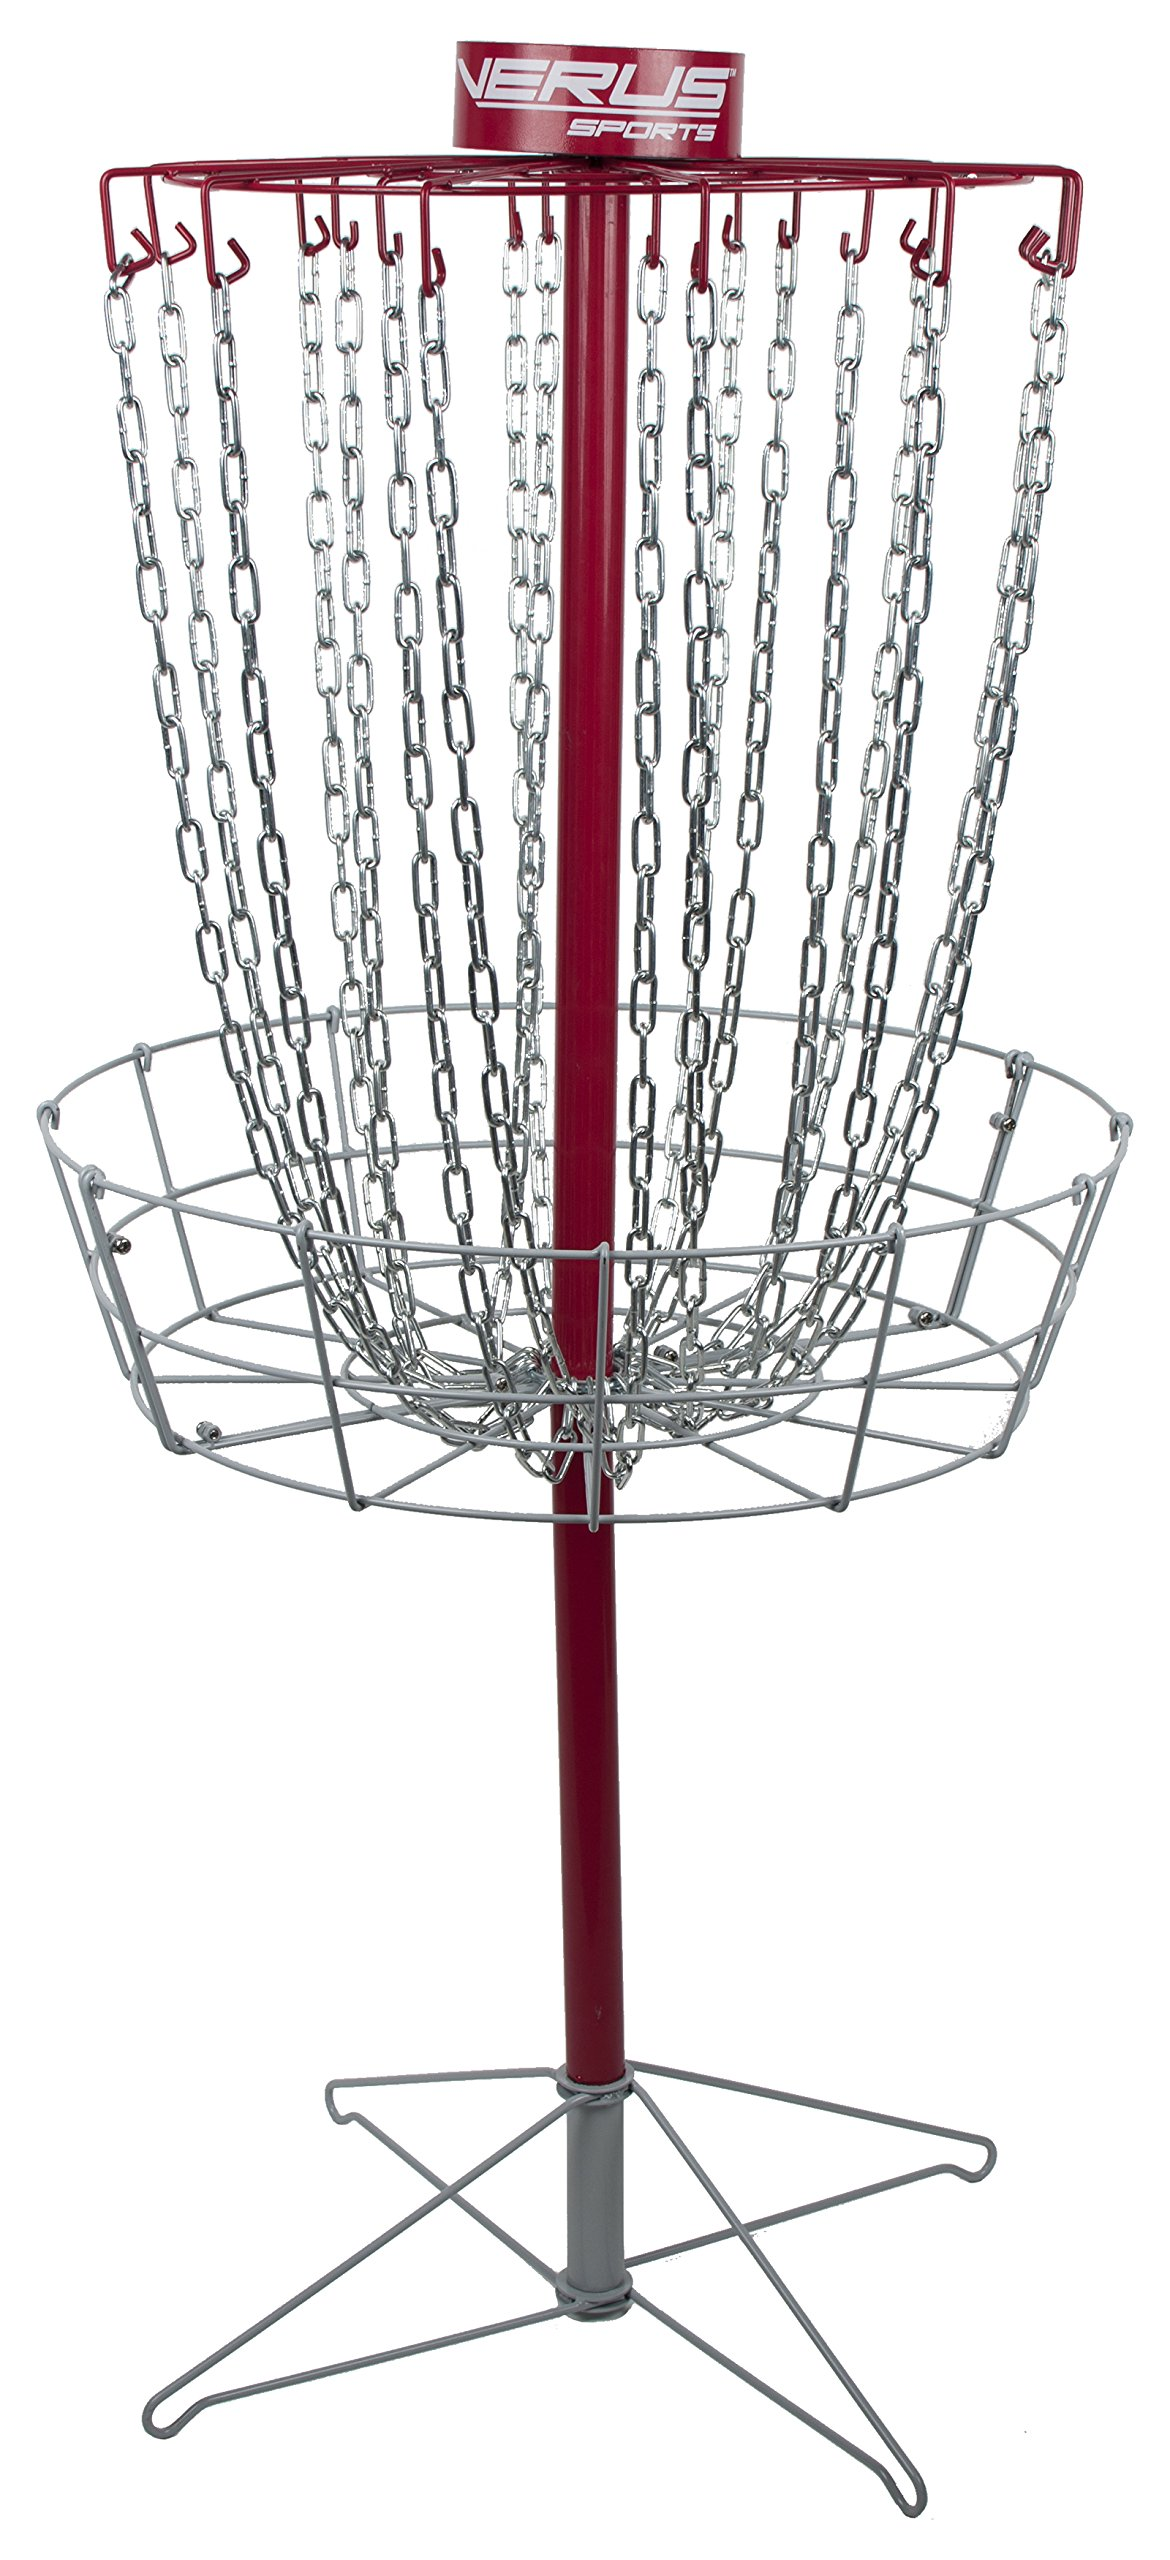 Verus Sports TG455 Regulation Pro Disc Golf Basket, Red